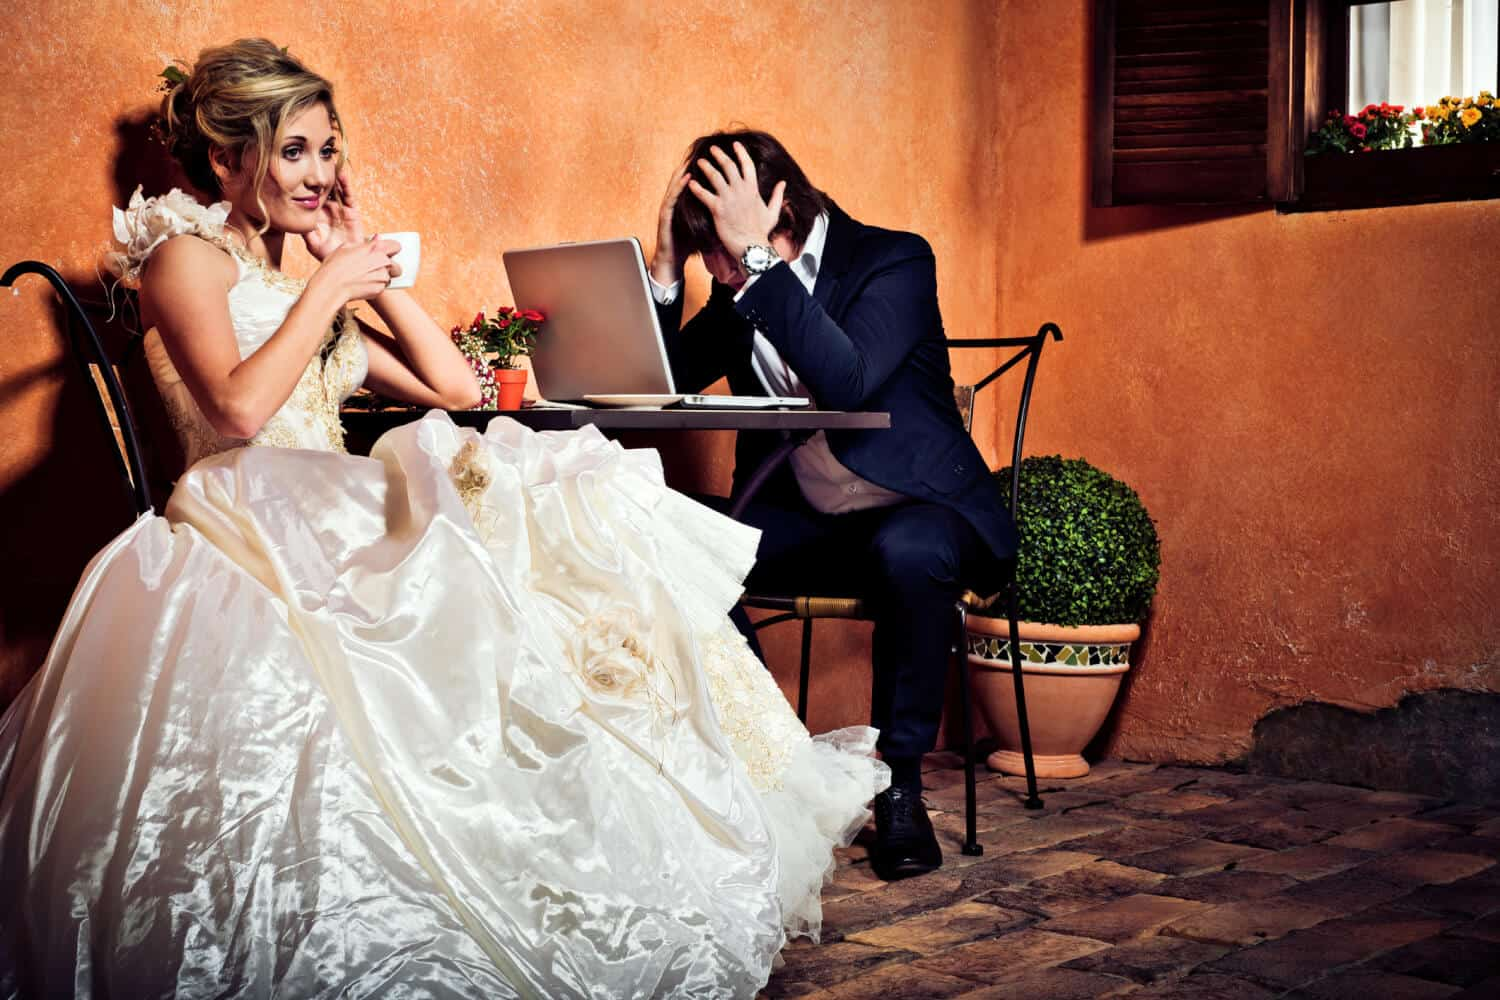 pictures 7 things that cause wedding debt and how to avoid it